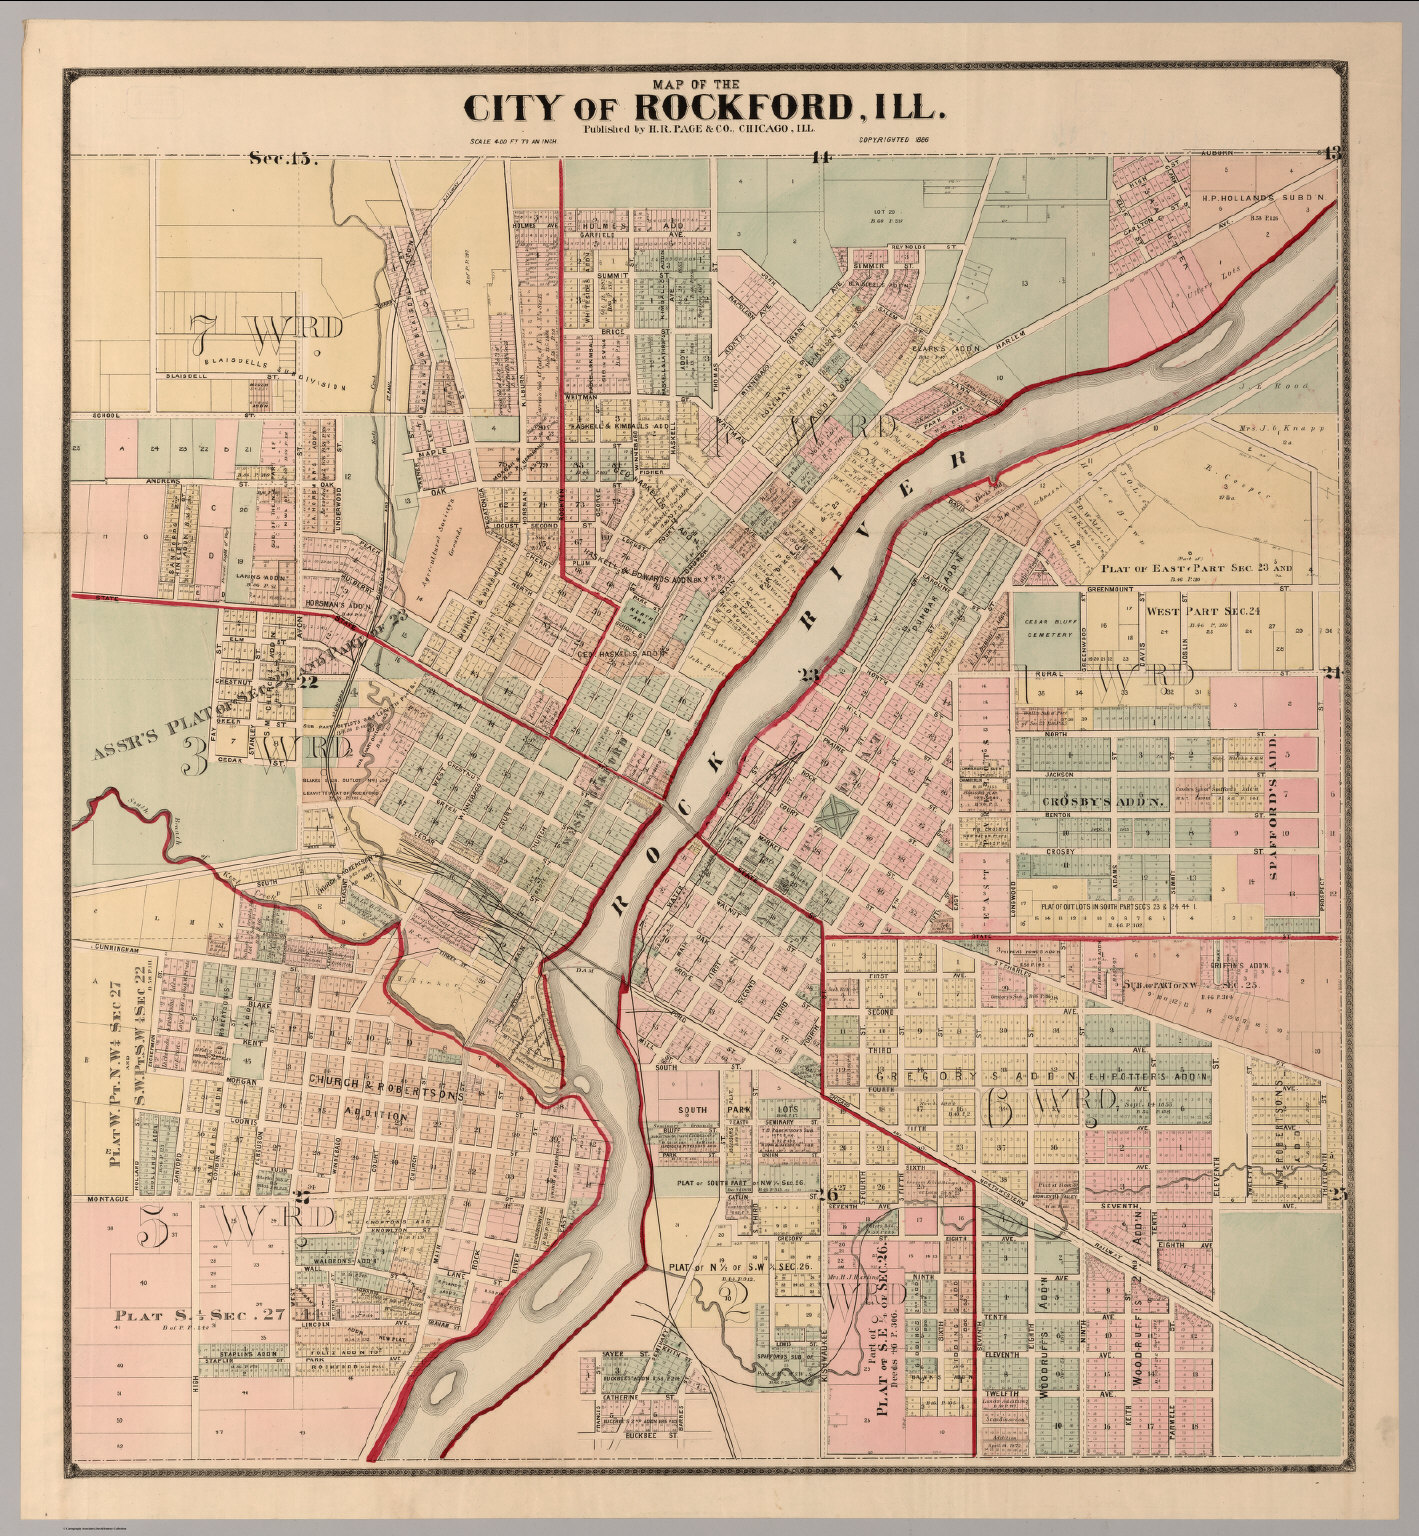 Rockford Il Map City of Rockford, Illinois.   David Rumsey Historical Map Collection